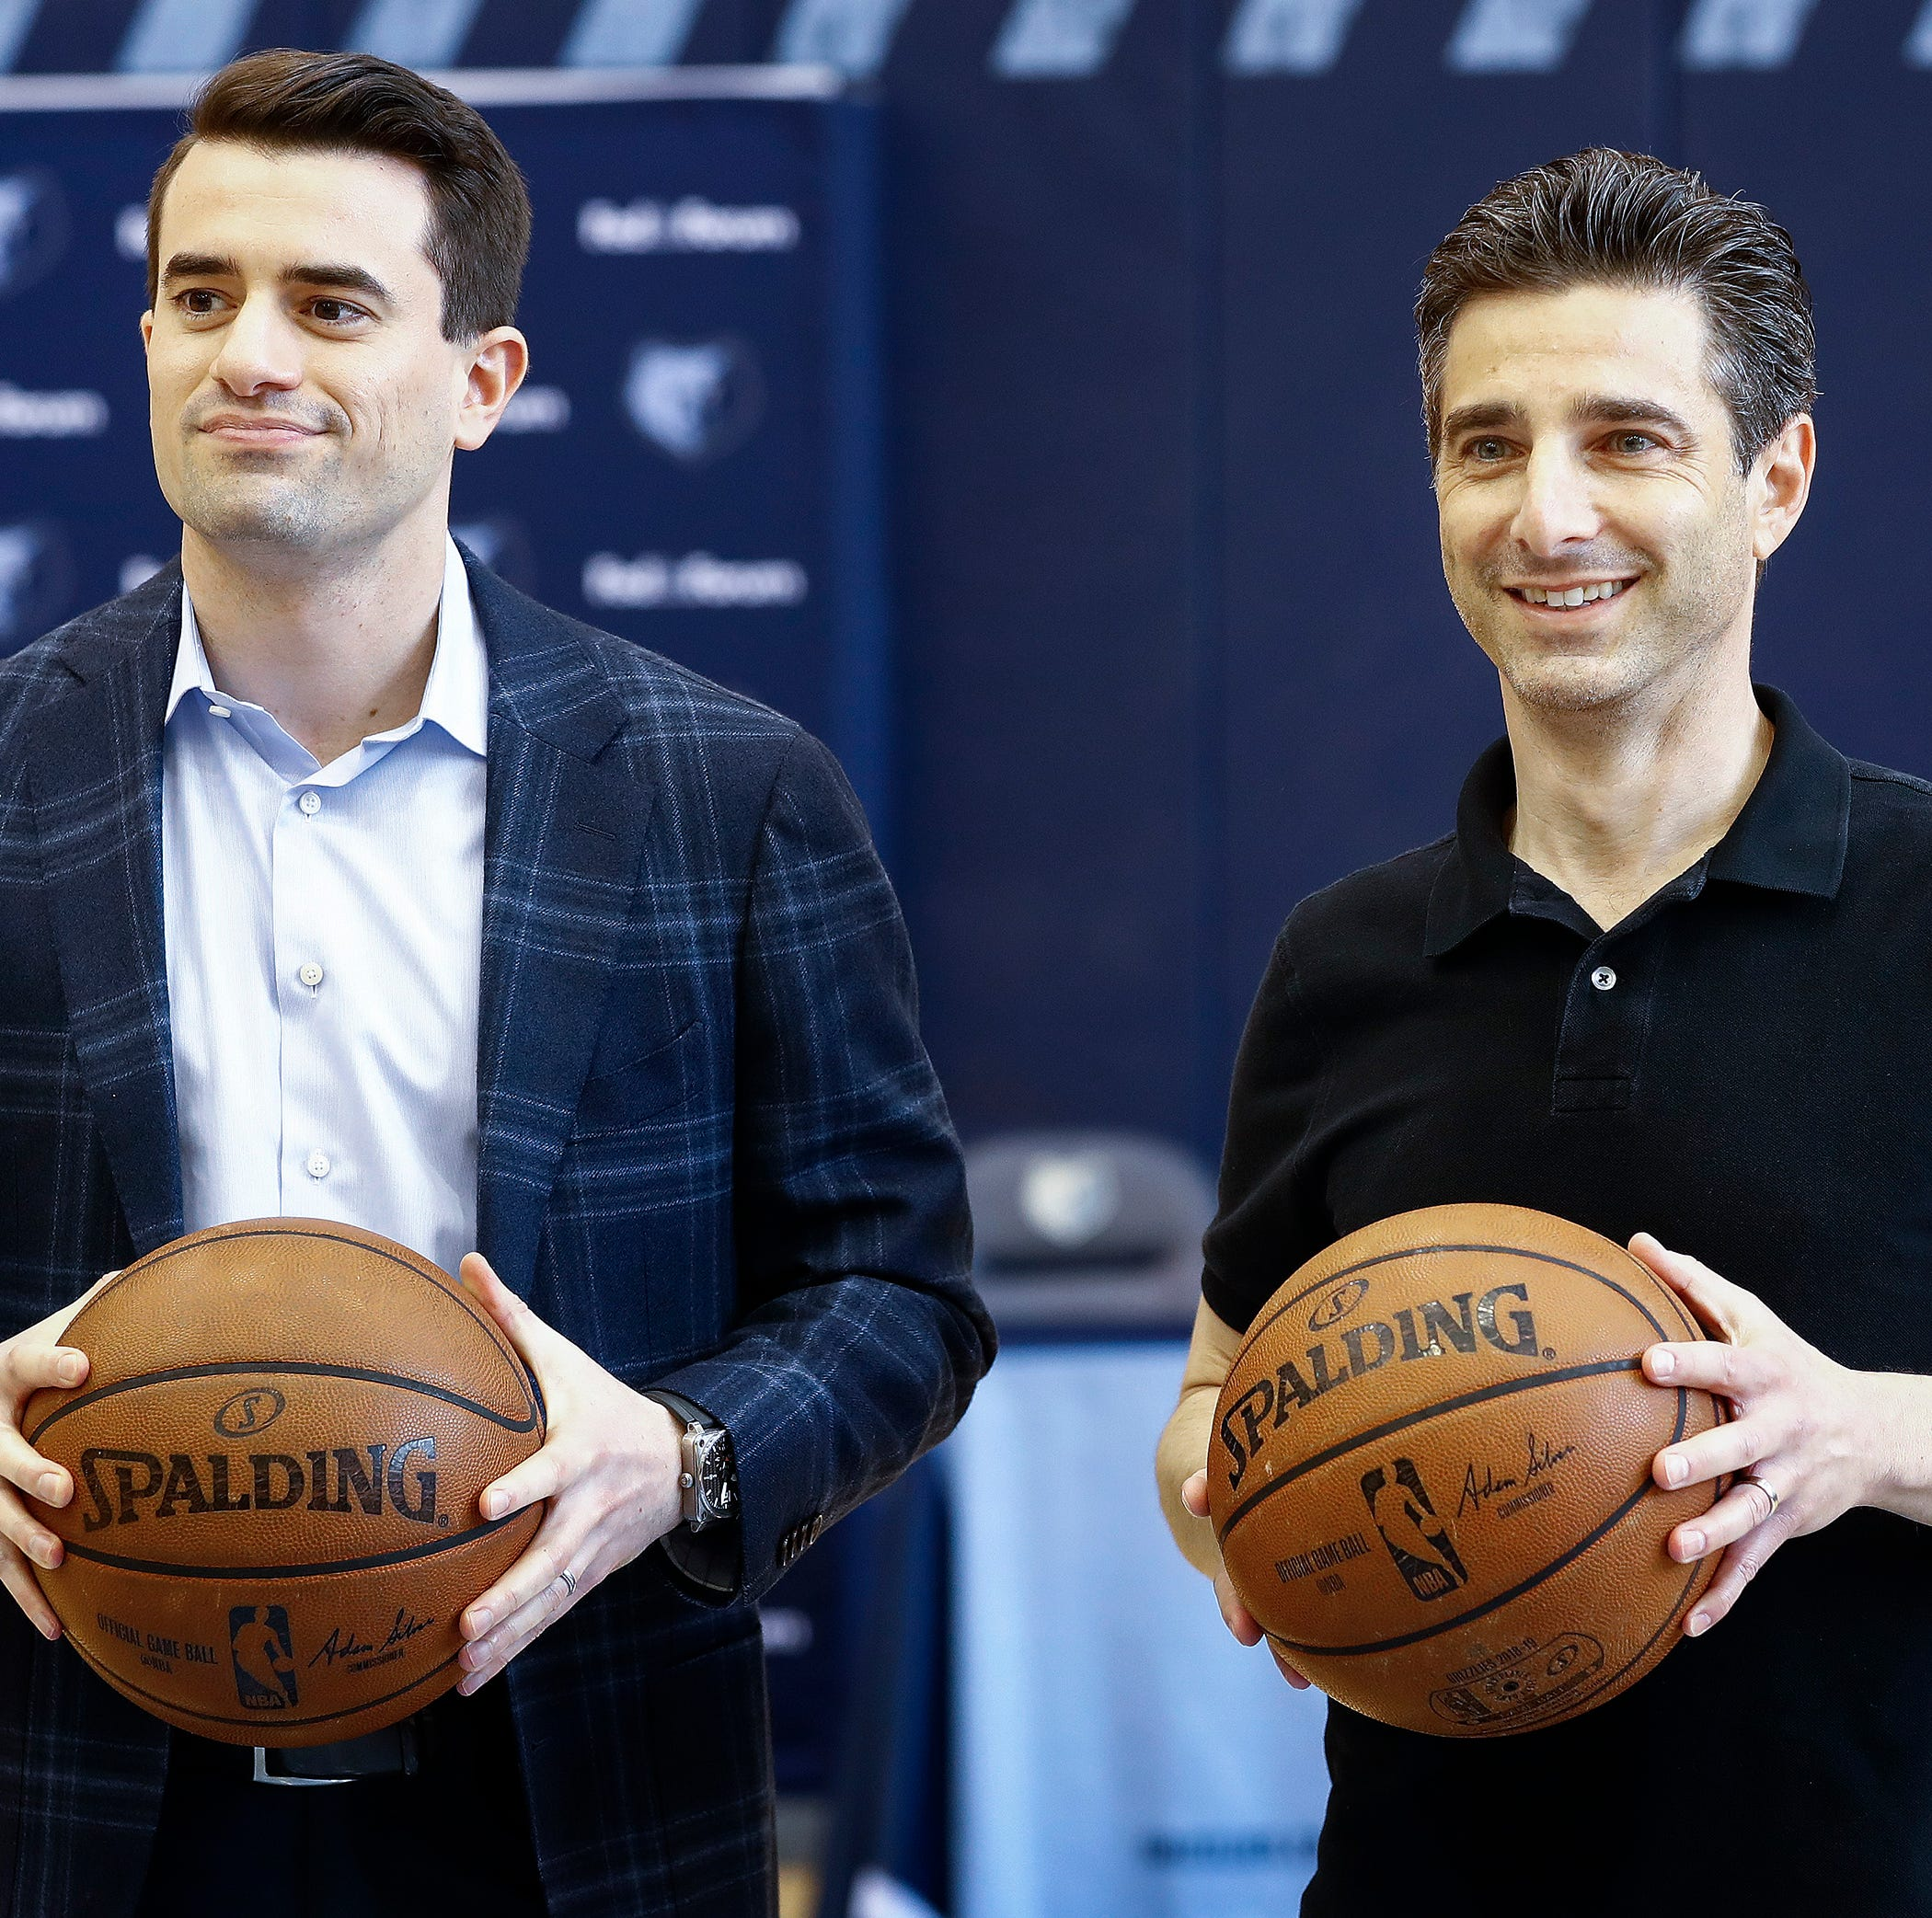 Empowered Memphis Grizzlies executives Jason Wexler, Zach Kleiman look to future